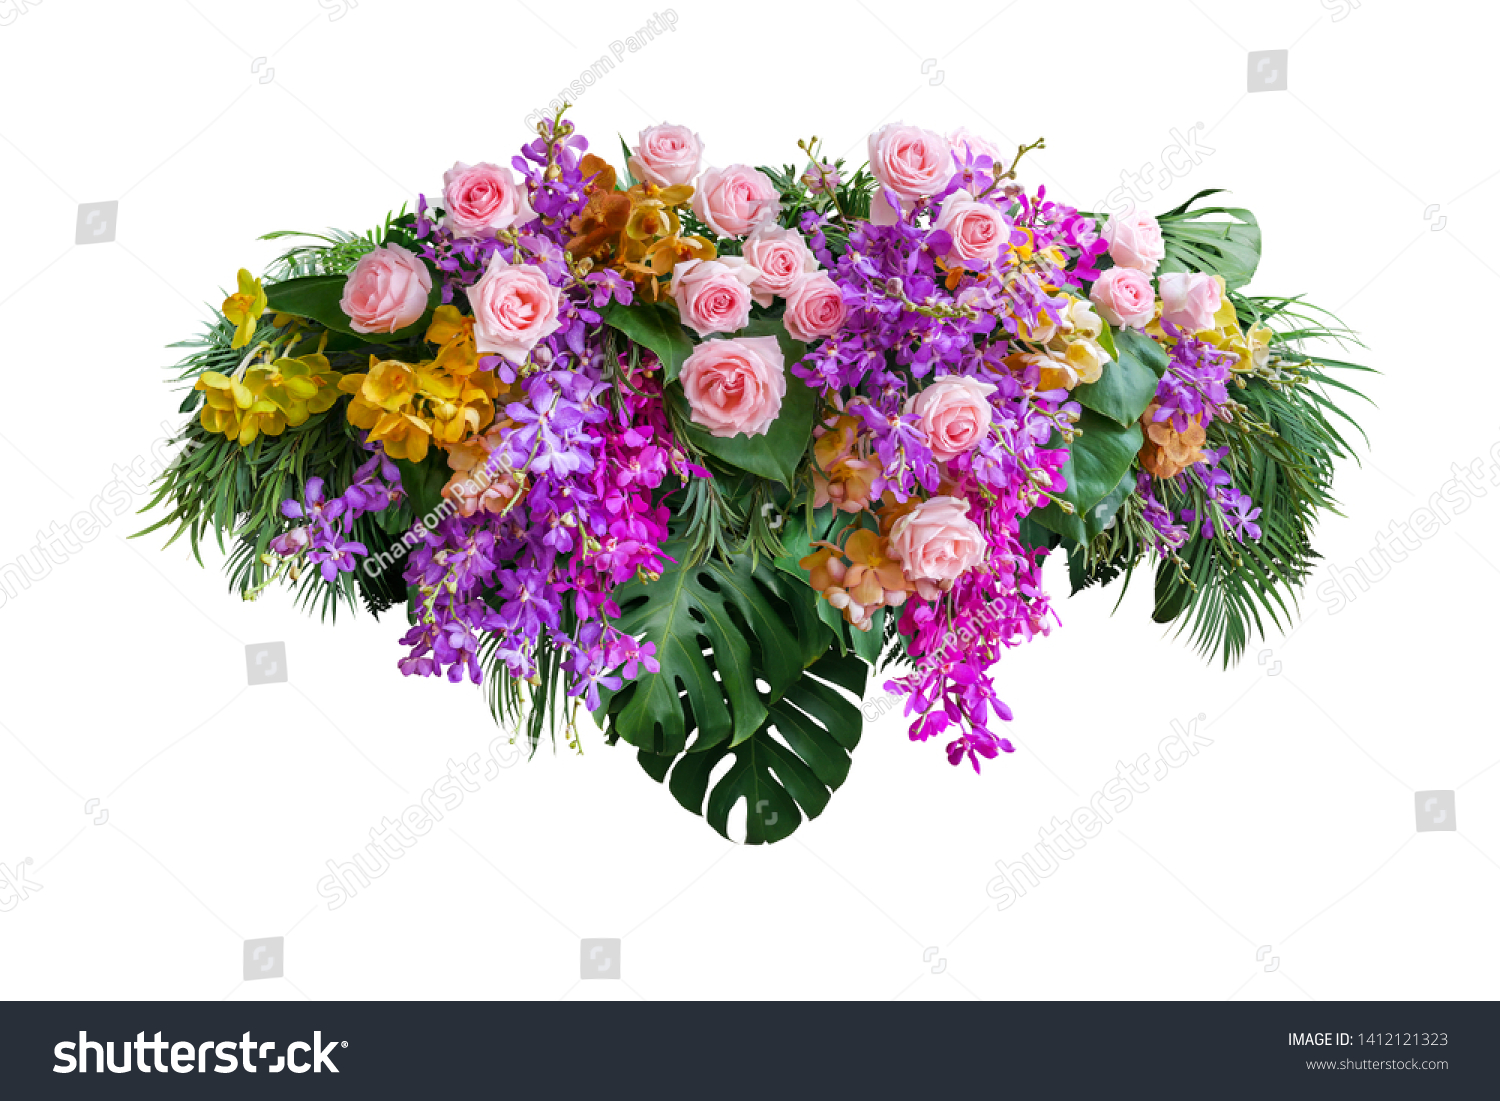 Pink rose and orchid flowers with tropical green leaves Monstera and palm frond bush, floral arrangement nature backdrop isolated on white background with clipping path. #1412121323